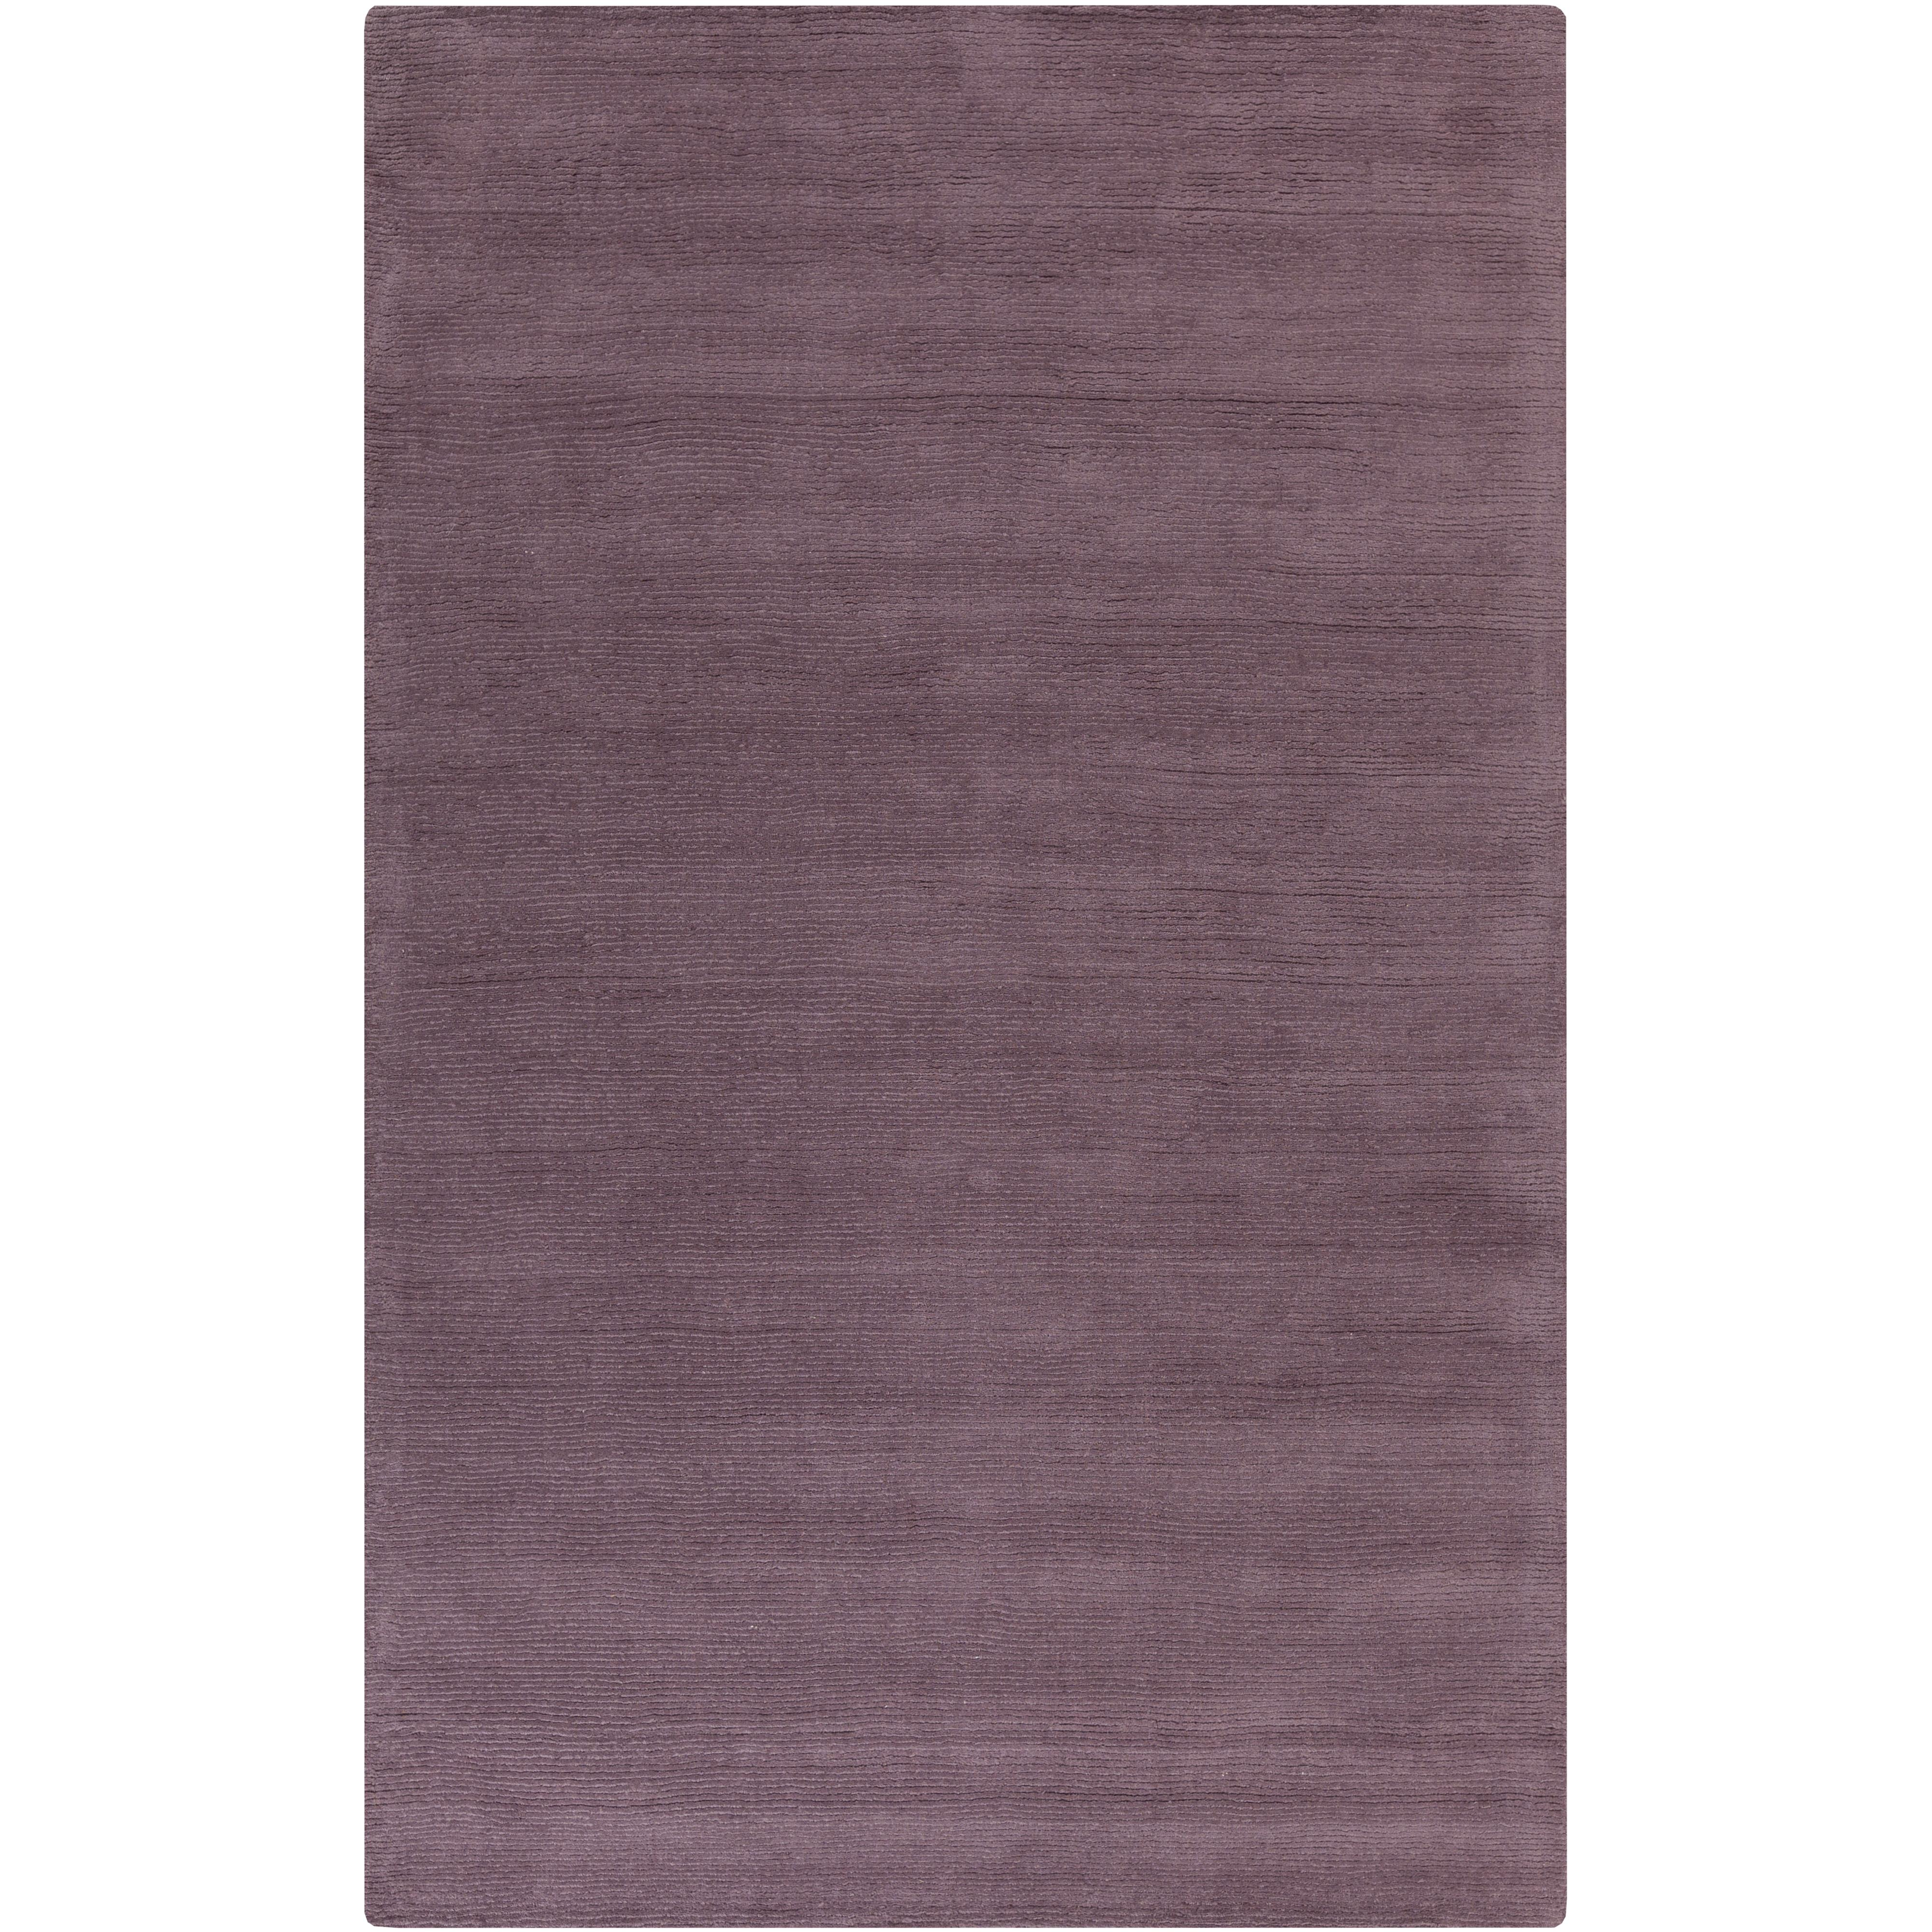 "Surya Mystique 7'6"" x 9'6"" - Item Number: M5329-7696"